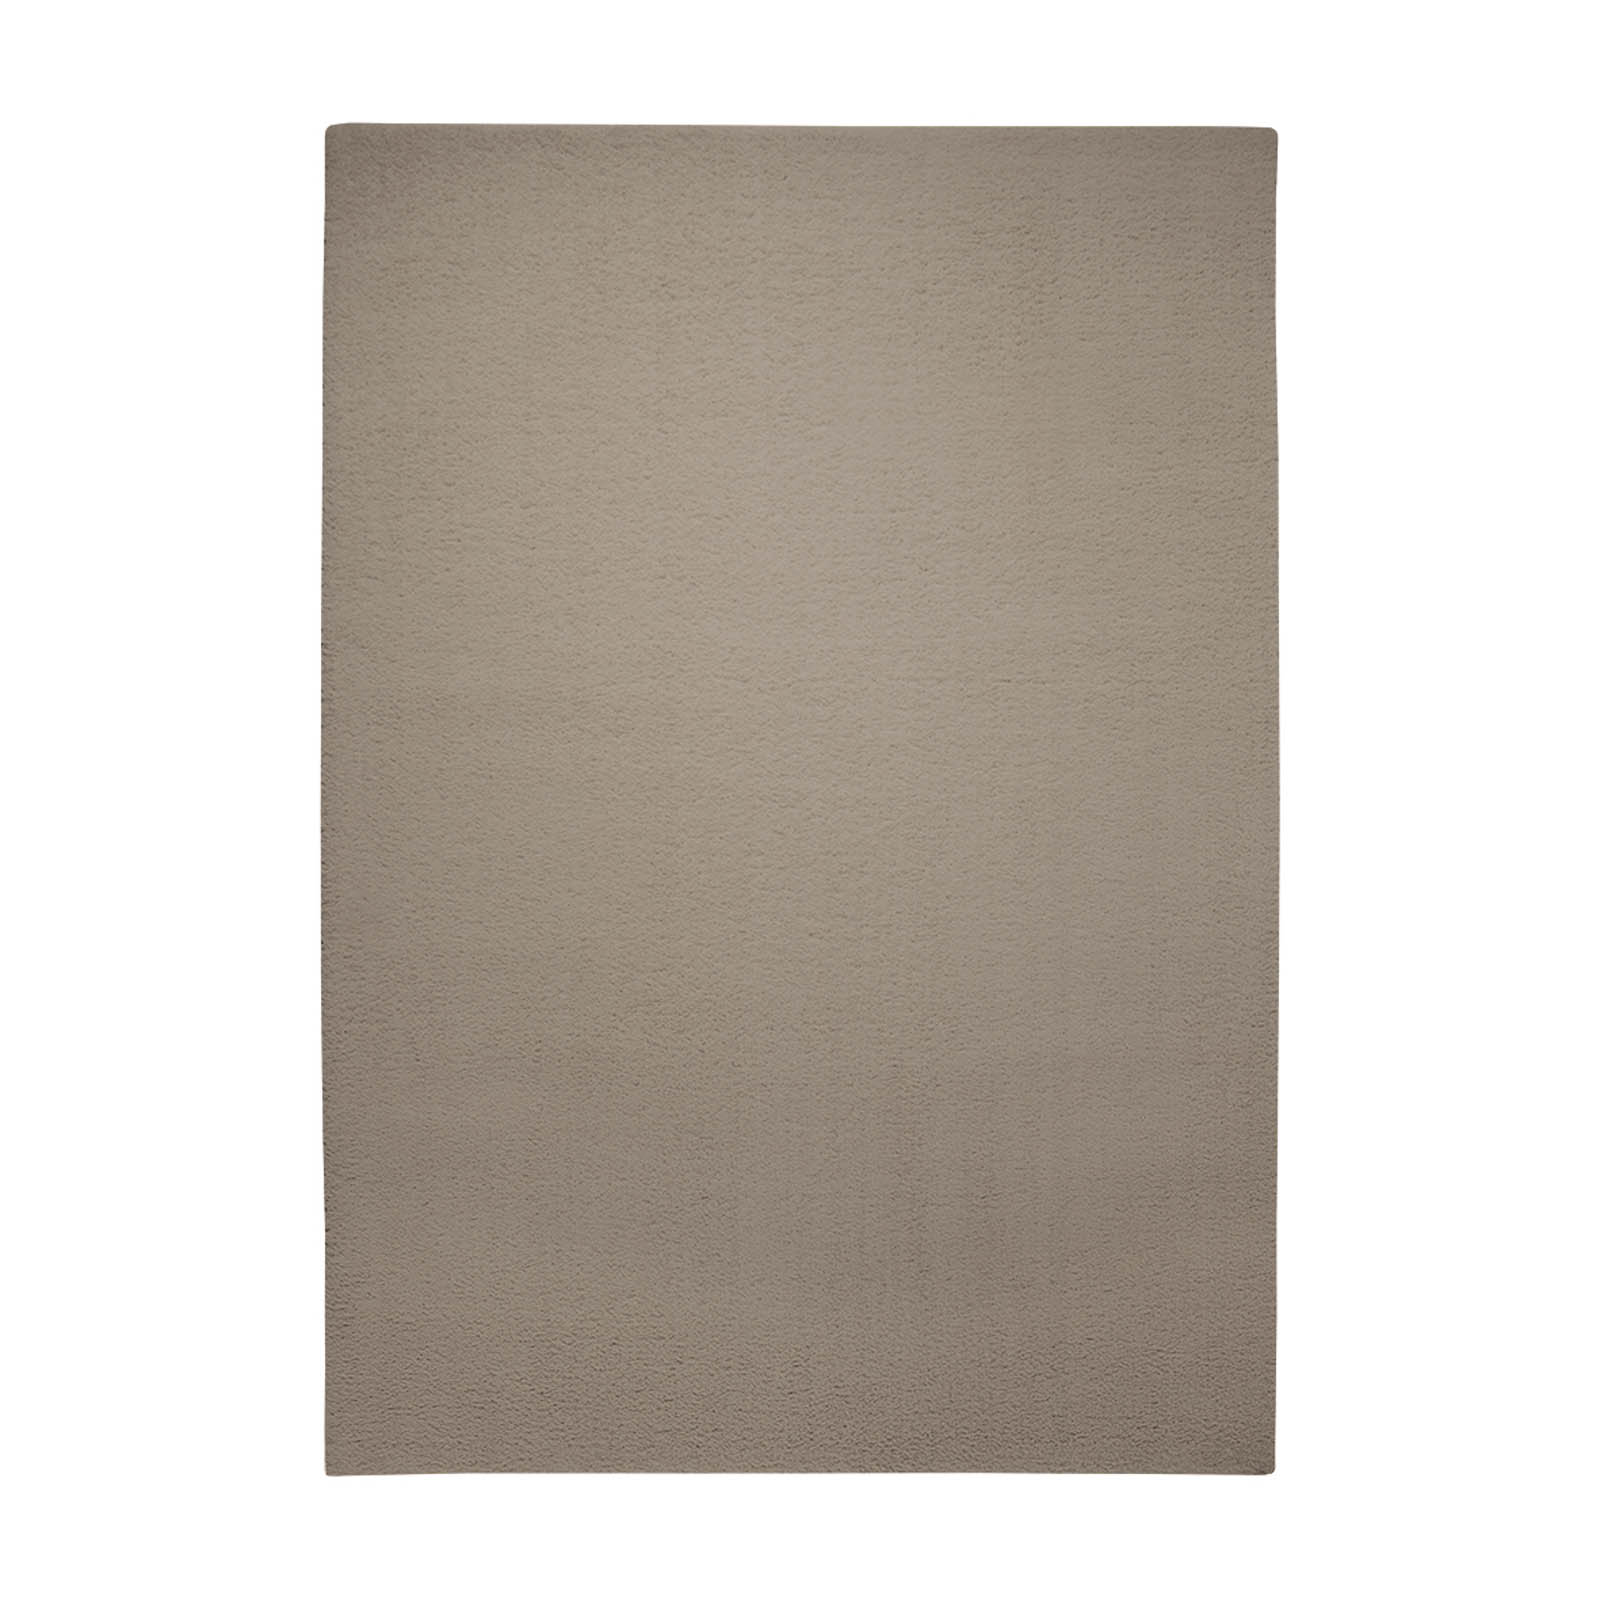 Chill Glamour Rugs 8250 30 by Esprit in Taupe